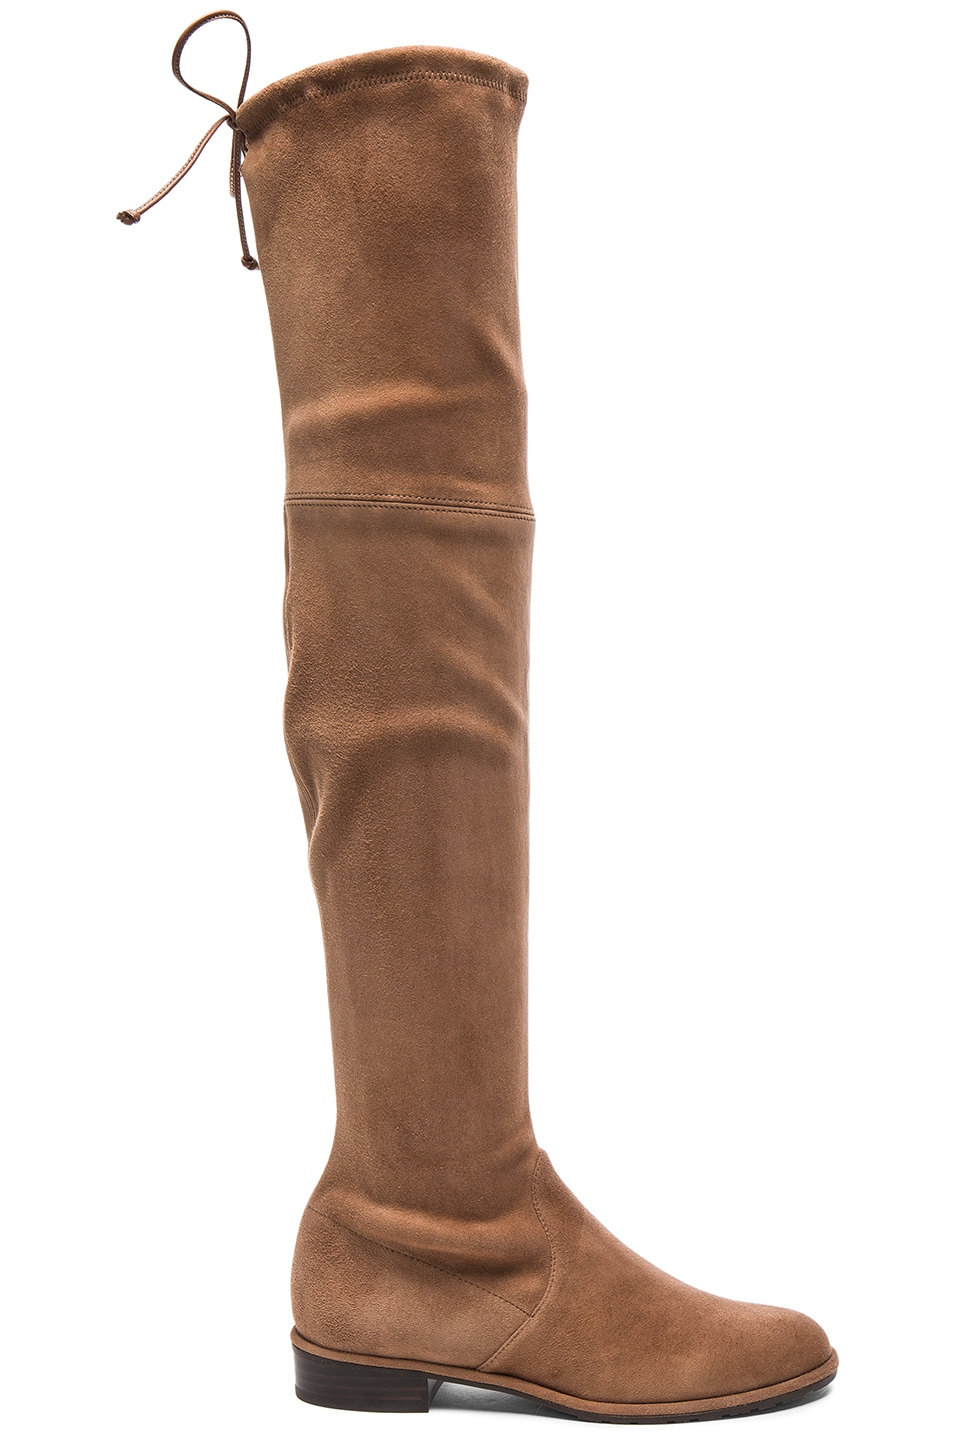 Image 1 of Stuart Weitzman Suede Lowland Boots in Nutmeg